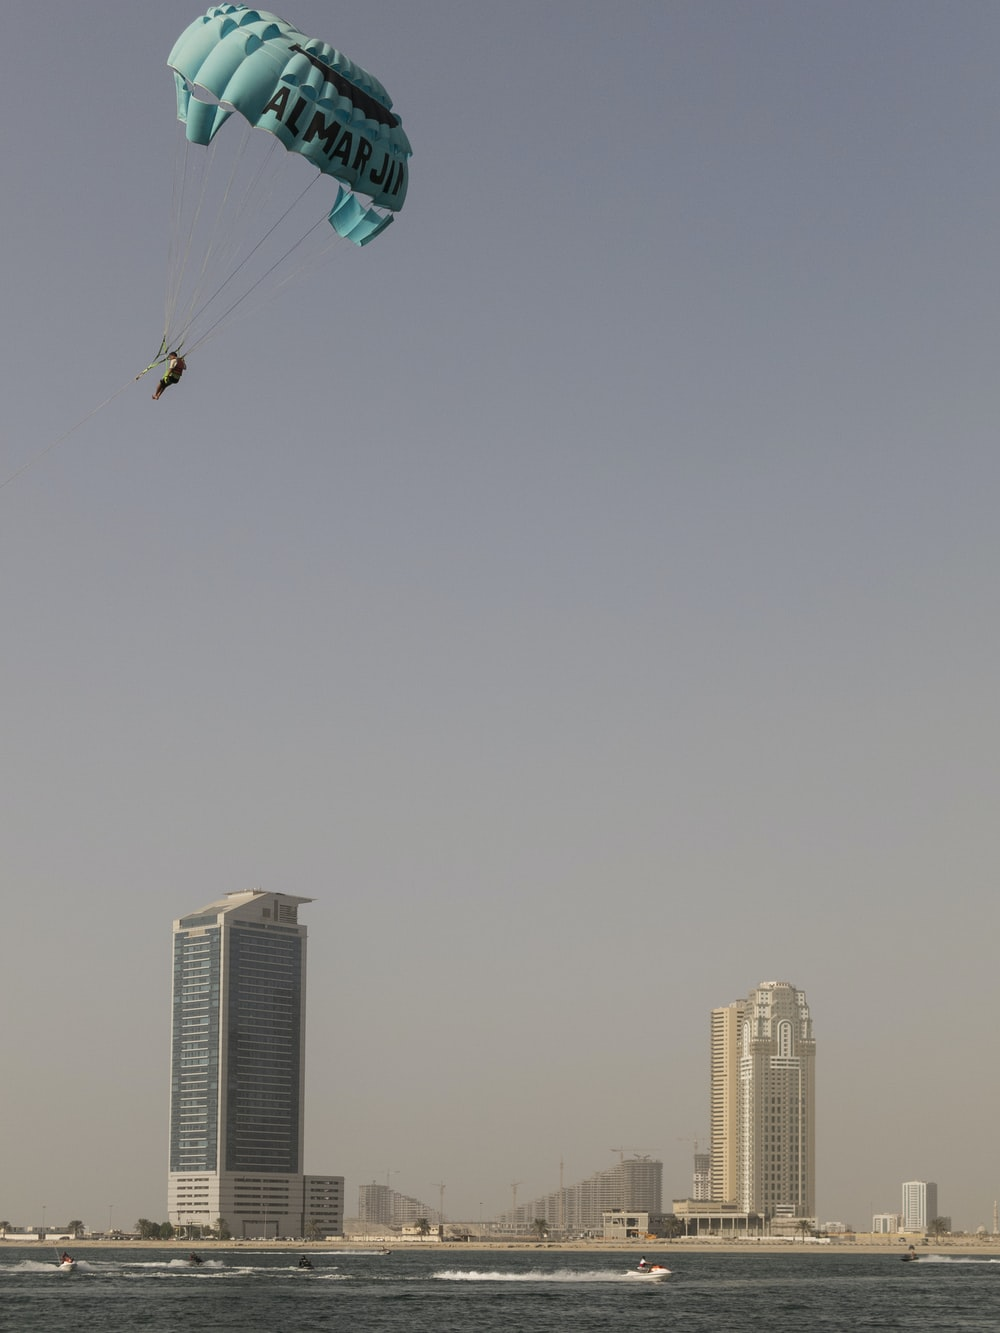 person in parachute above the water